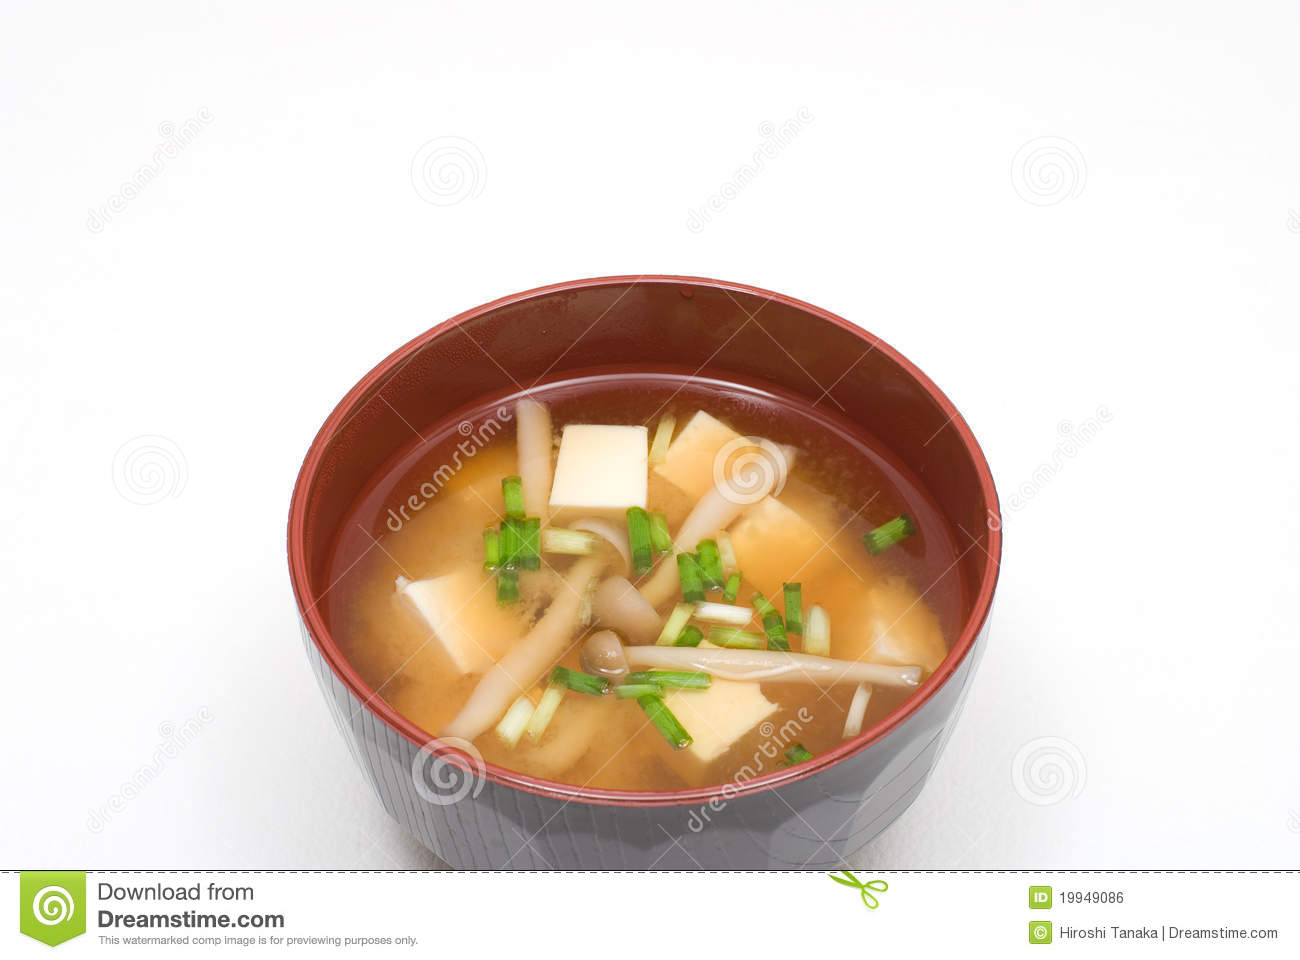 Miso Soup Royalty Free Stock Image - Image: 19949086